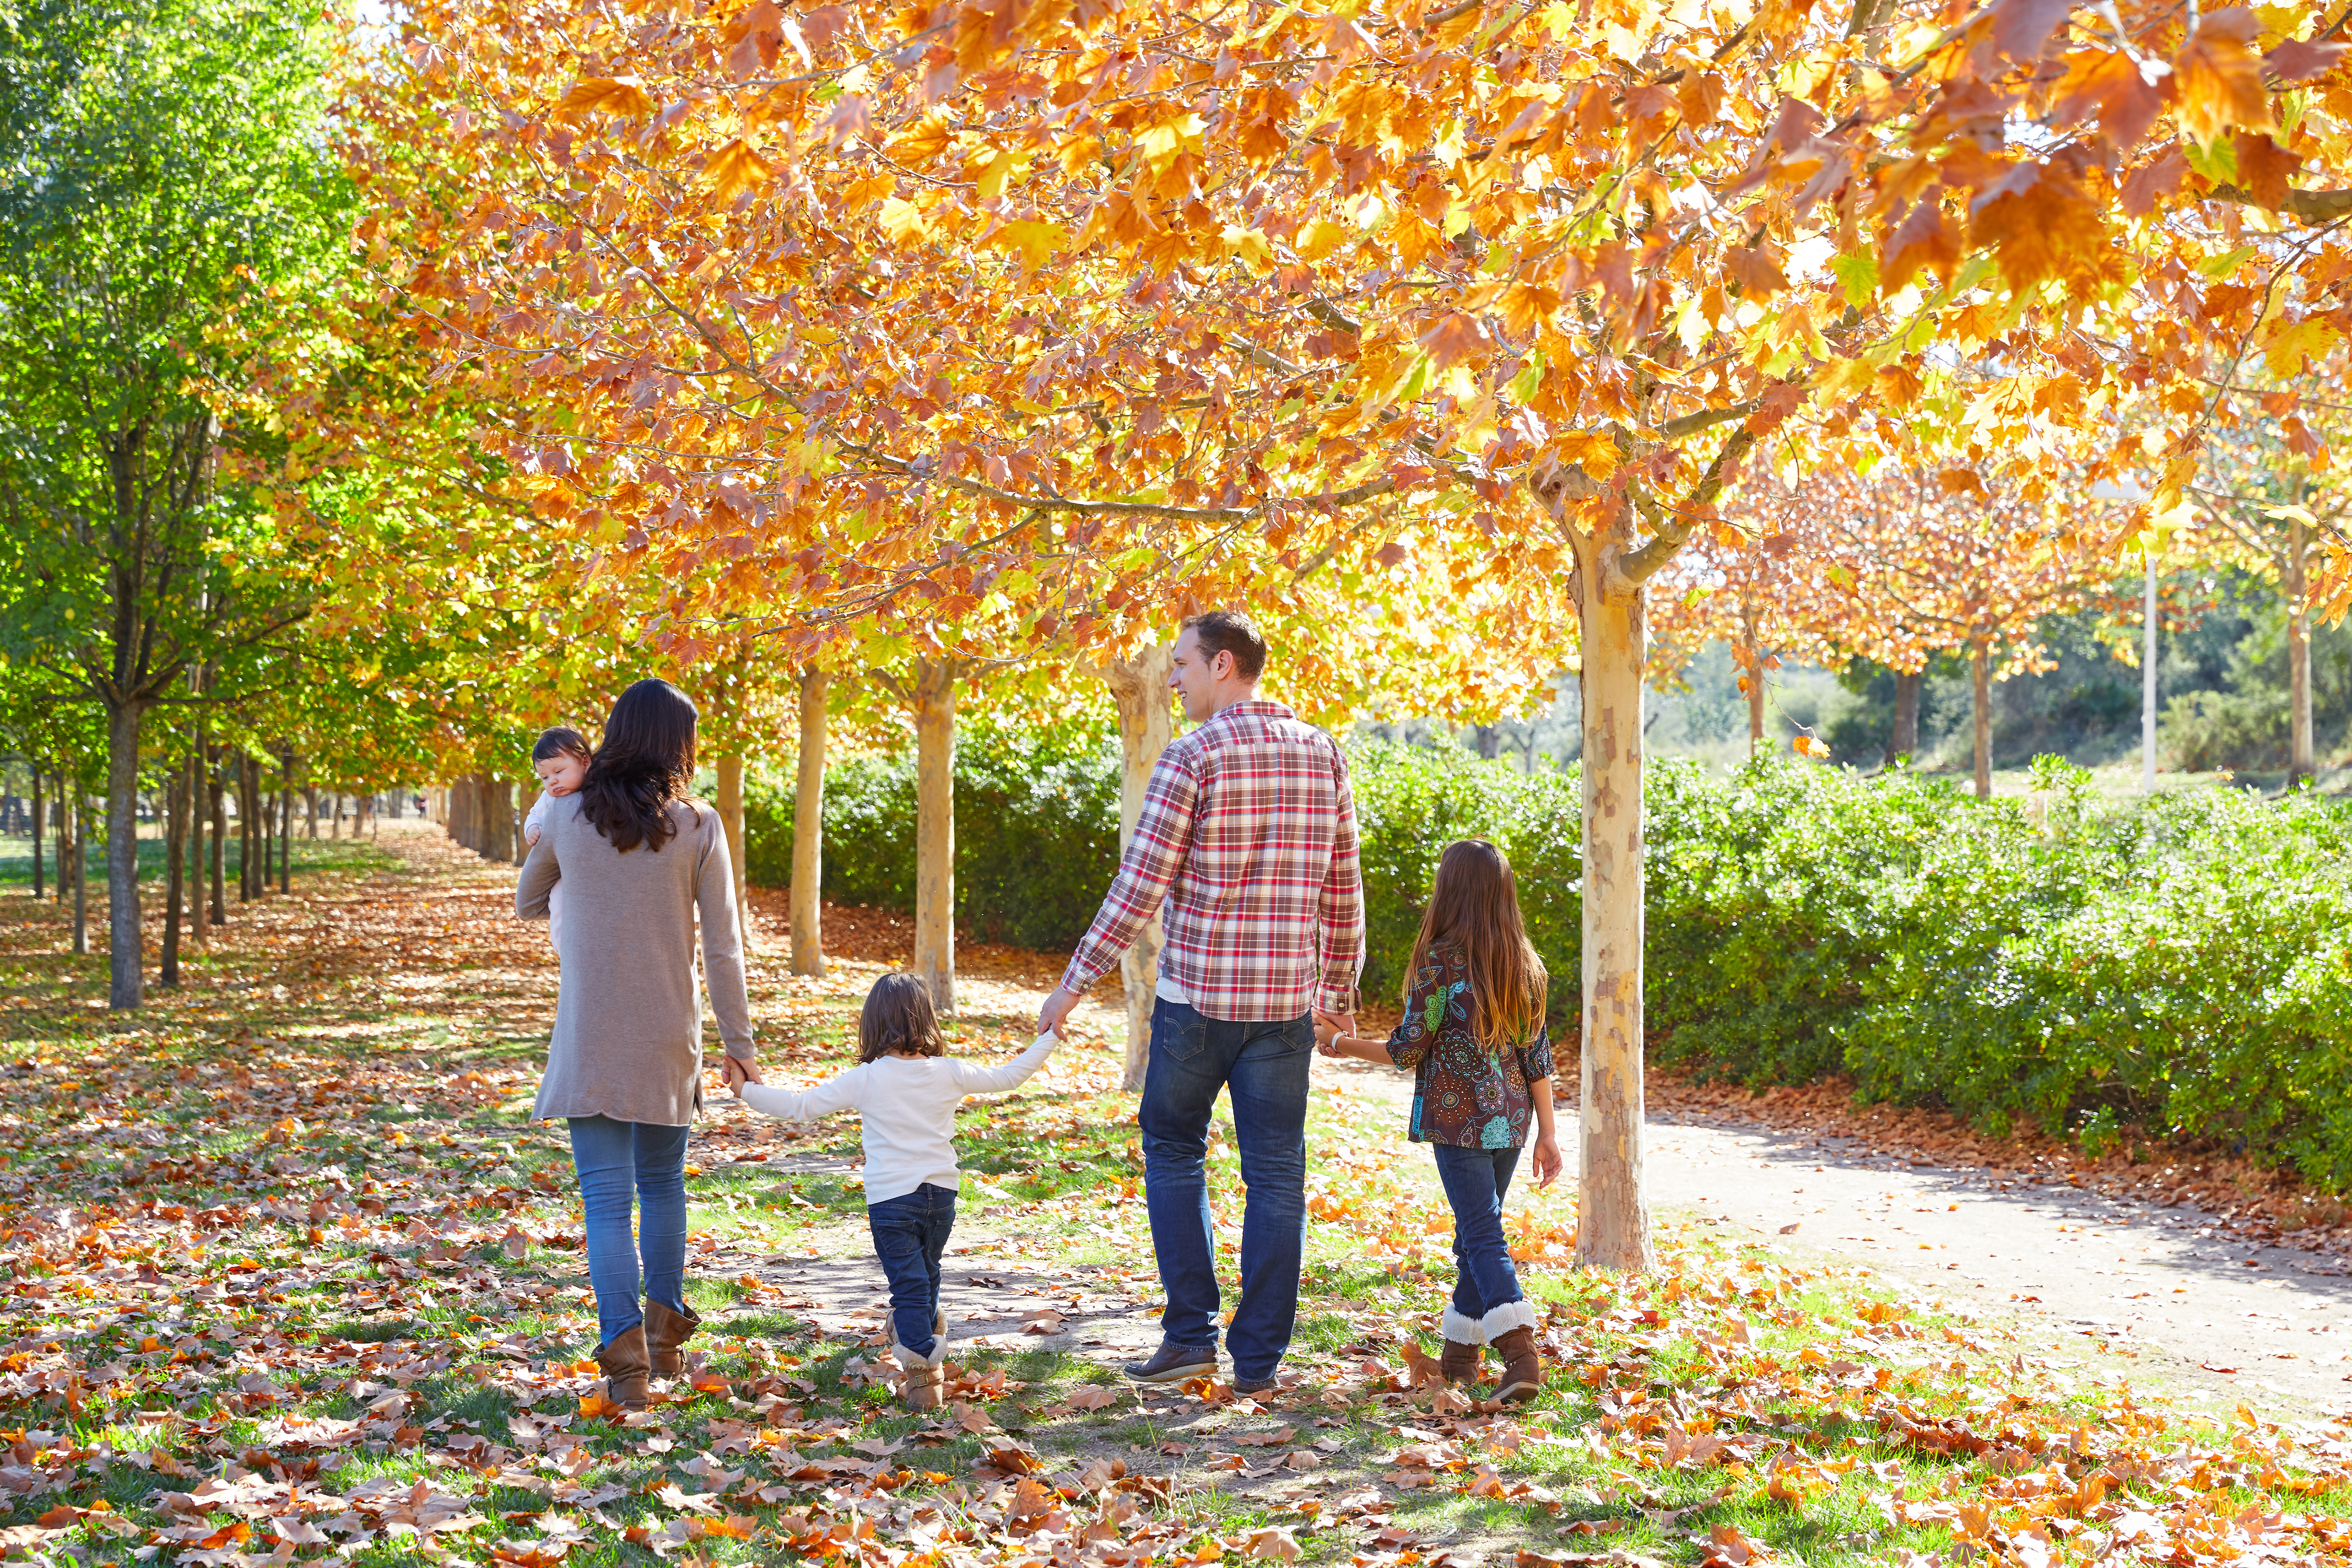 A family with small children walks down a sunny,  grassy path surrounded by fall leaves and trees that are changing color.